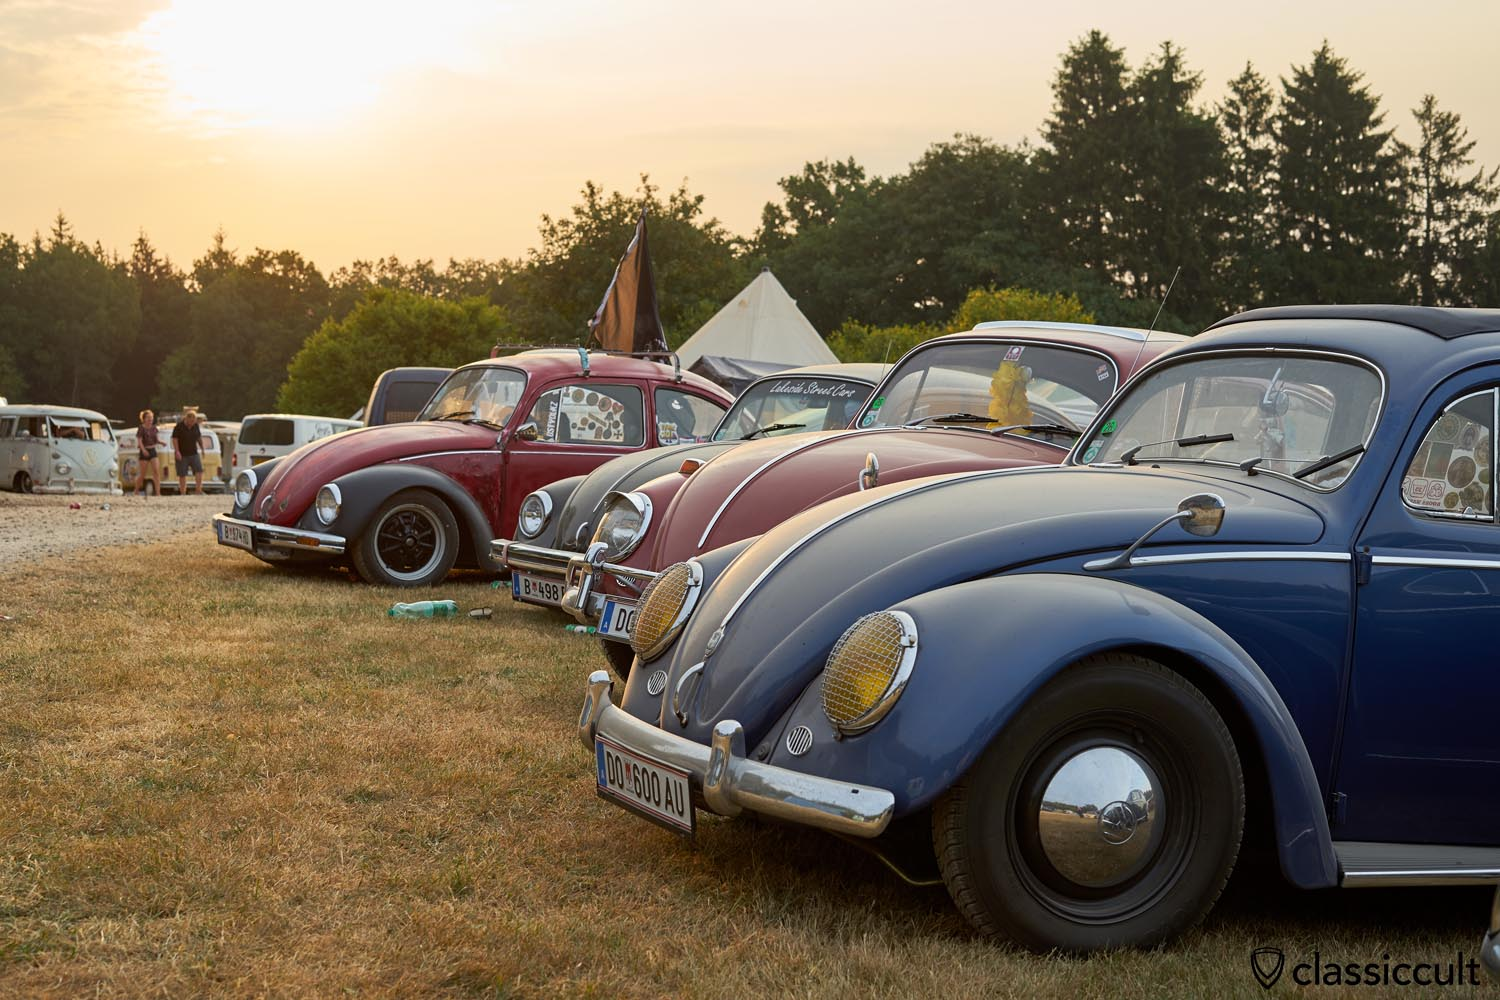 VW Bug Show Spa Belgium 2018